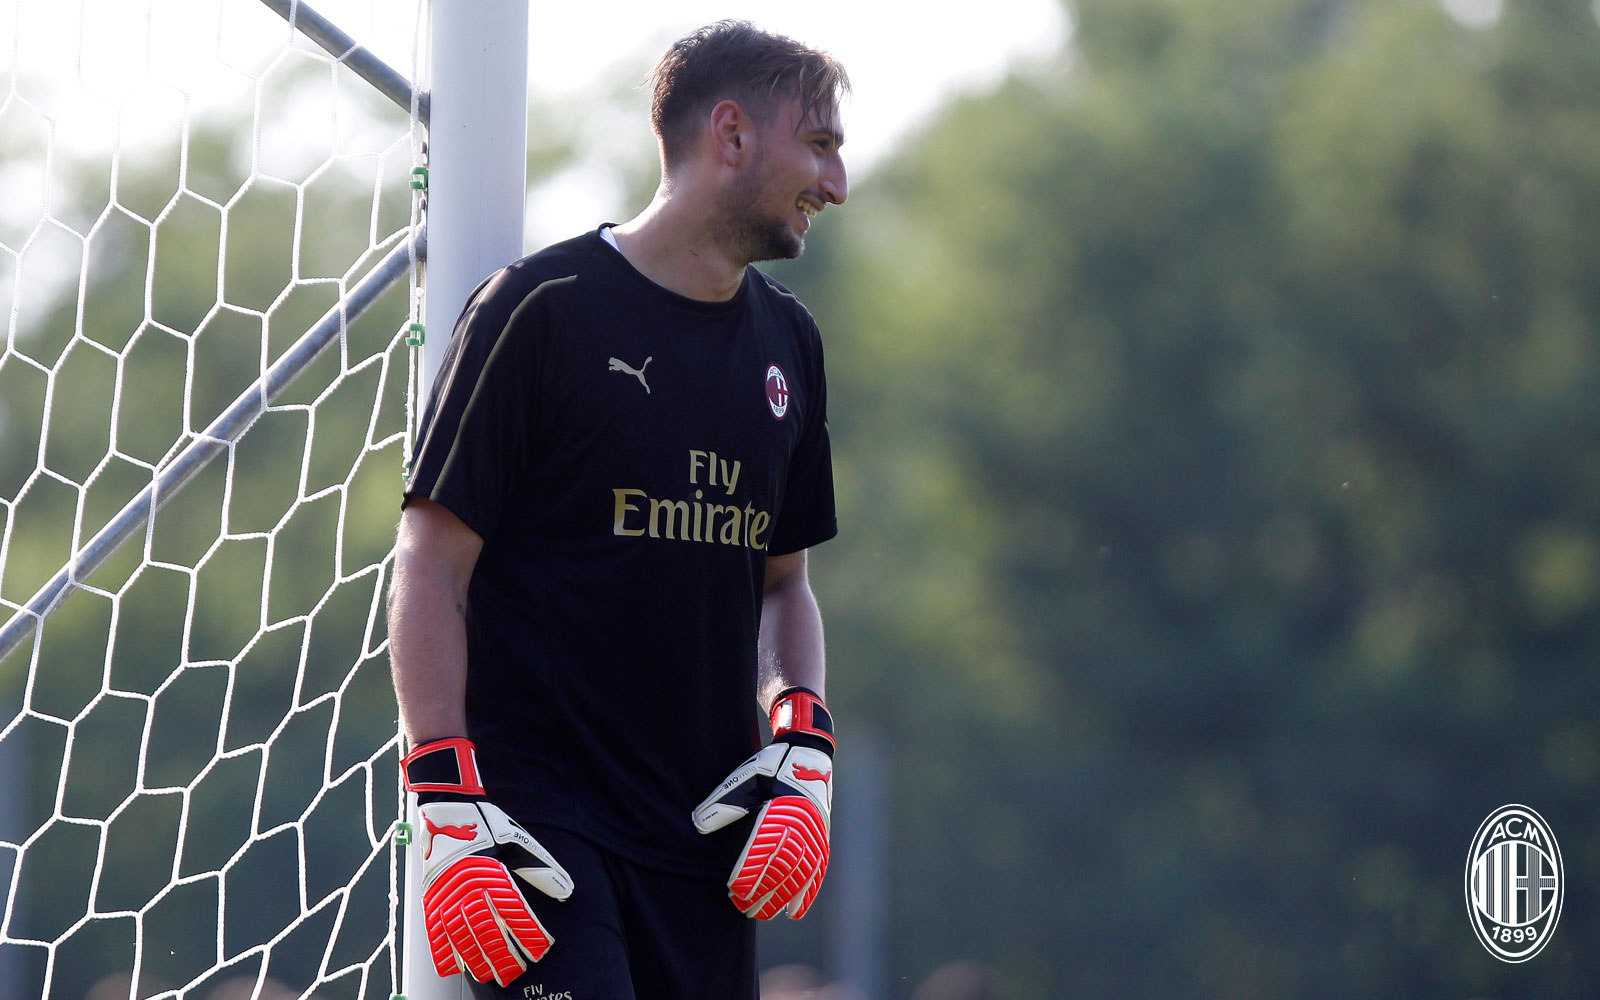 Gianluigi Donnarumma during training at Milanello. (@acmilan.com)